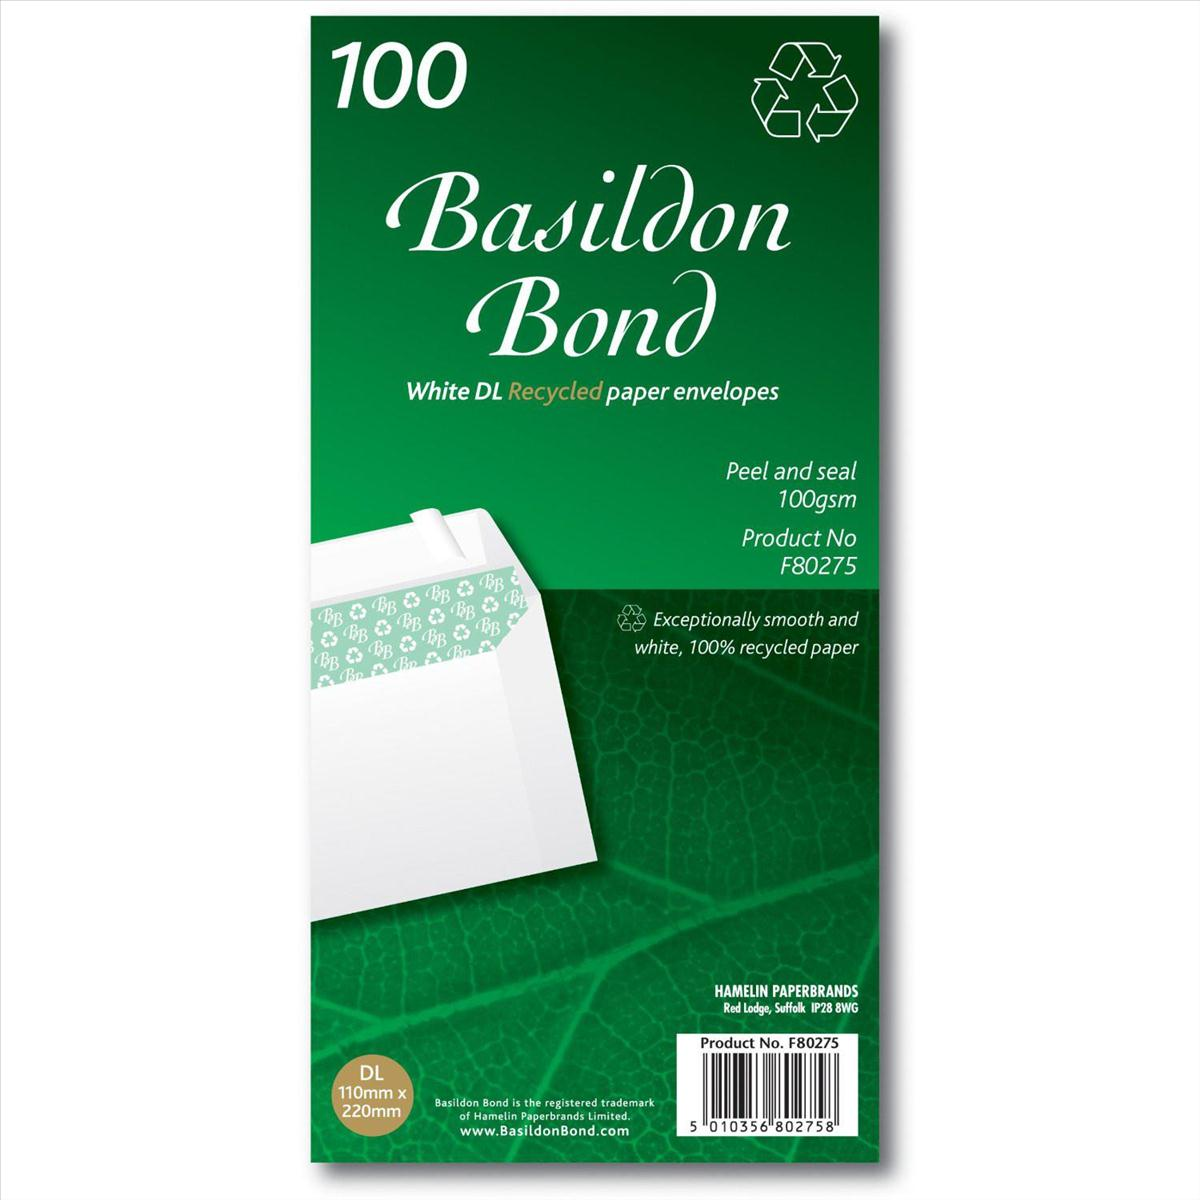 Image for Basildon Bond Envelopes Recycled Wallet Peel and Seal 120gsm DL White Ref F80275 [Pack 100]